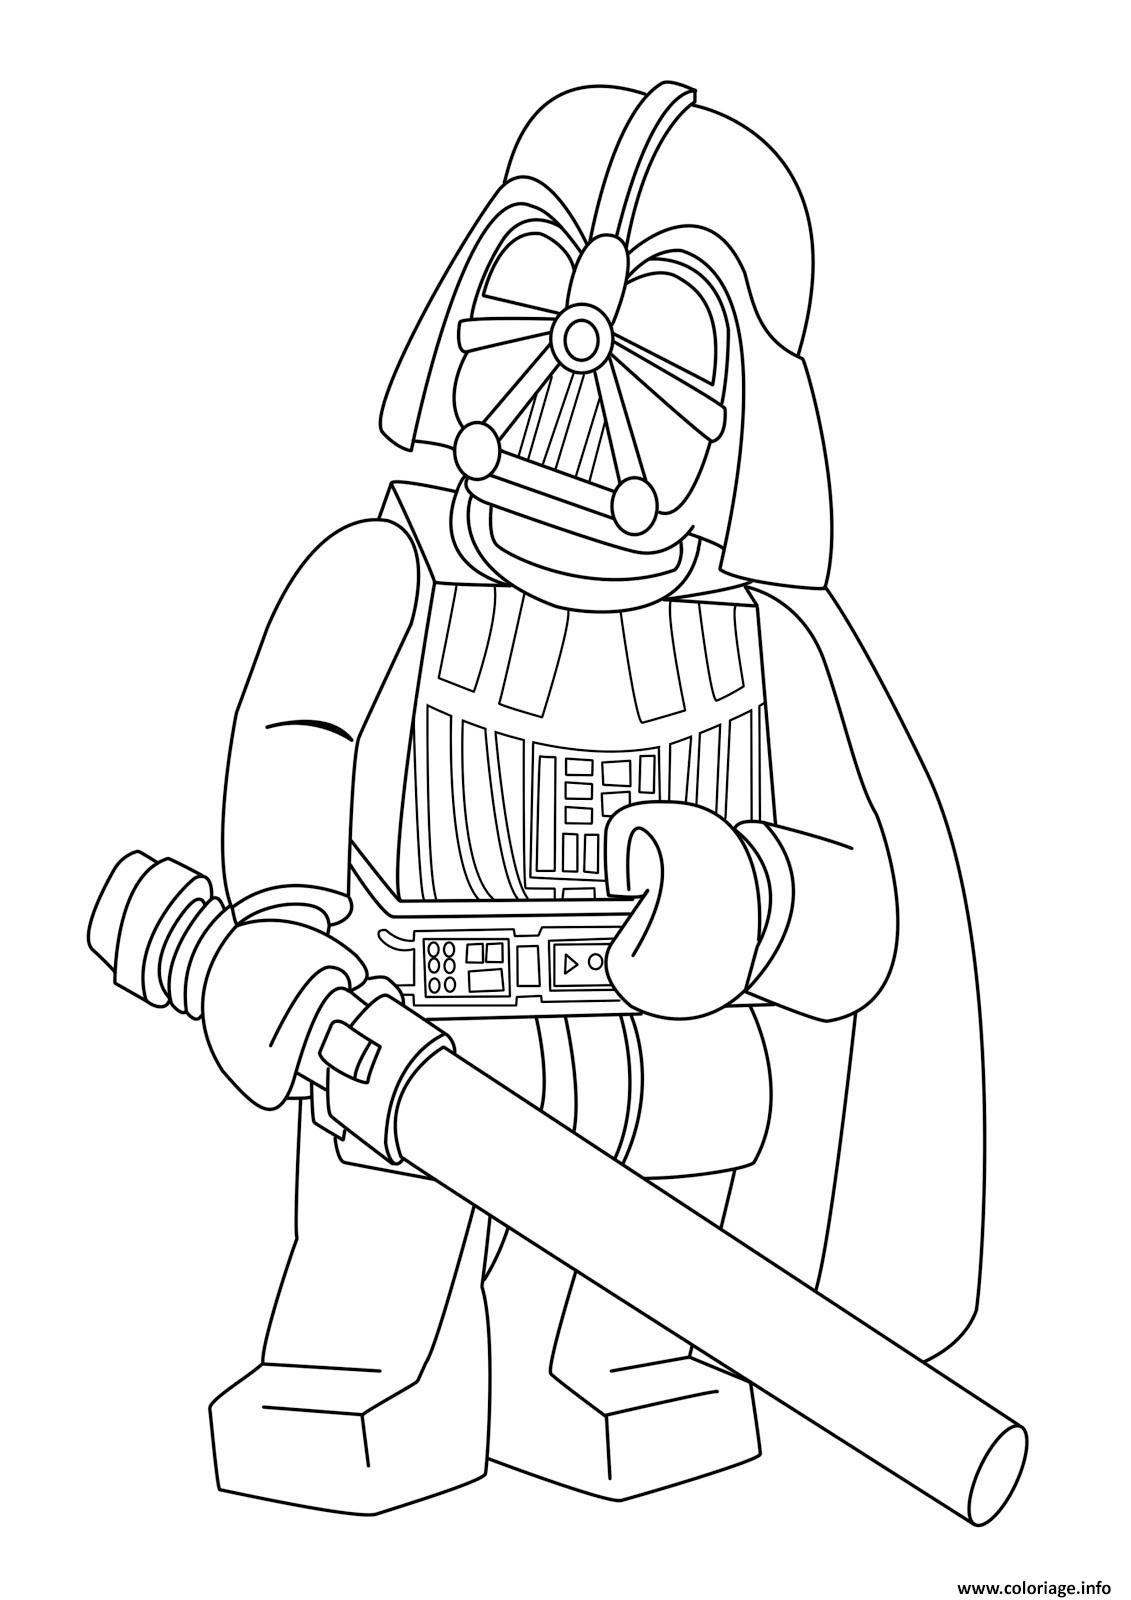 Coloriage lego star wars 3 online dessin - Coloriage star wars 3 ...